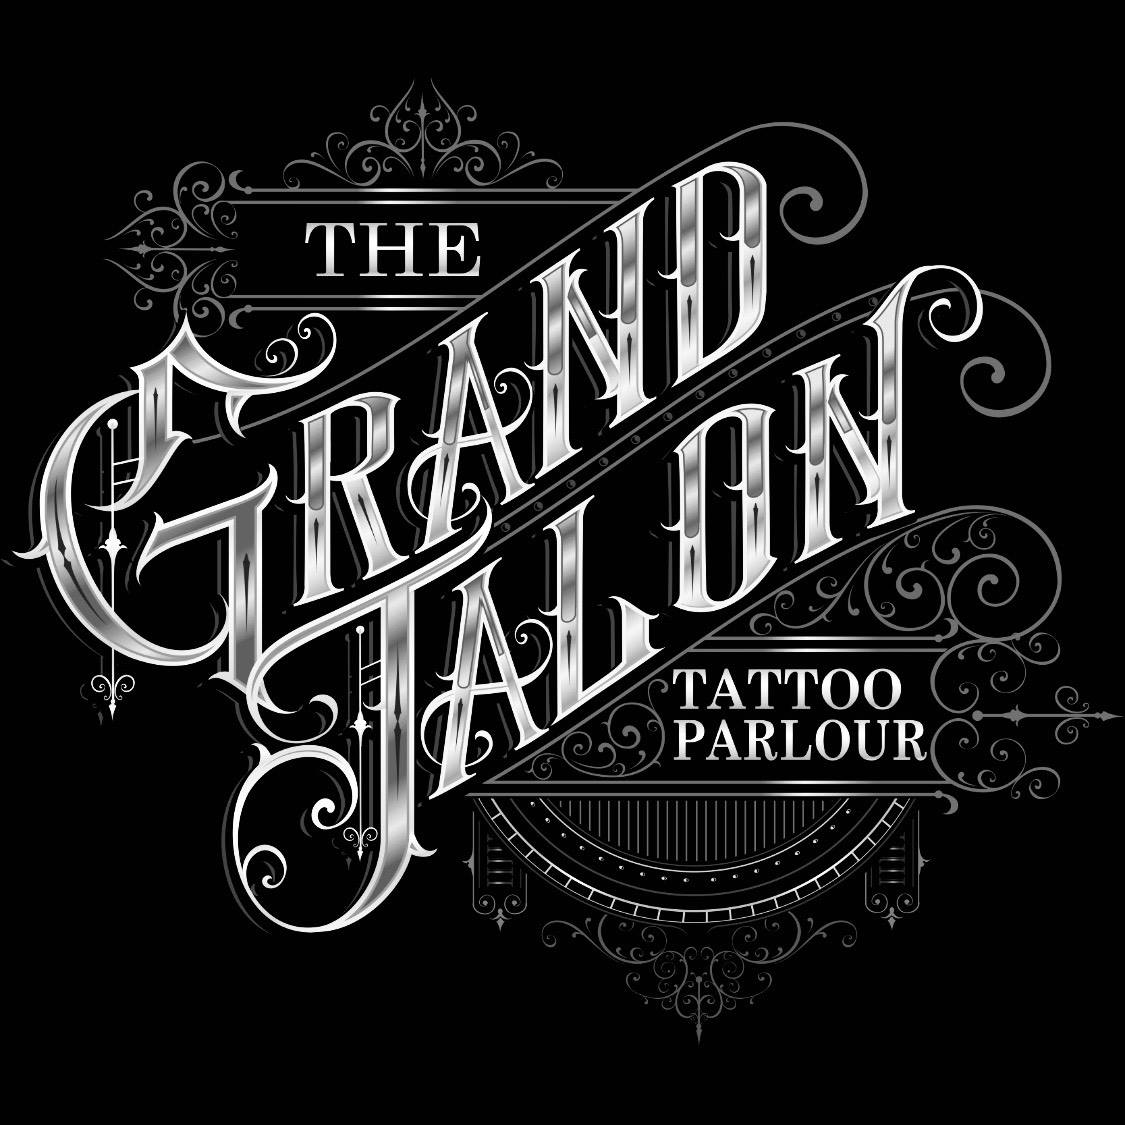 Grand Talon Tattoo Parlour